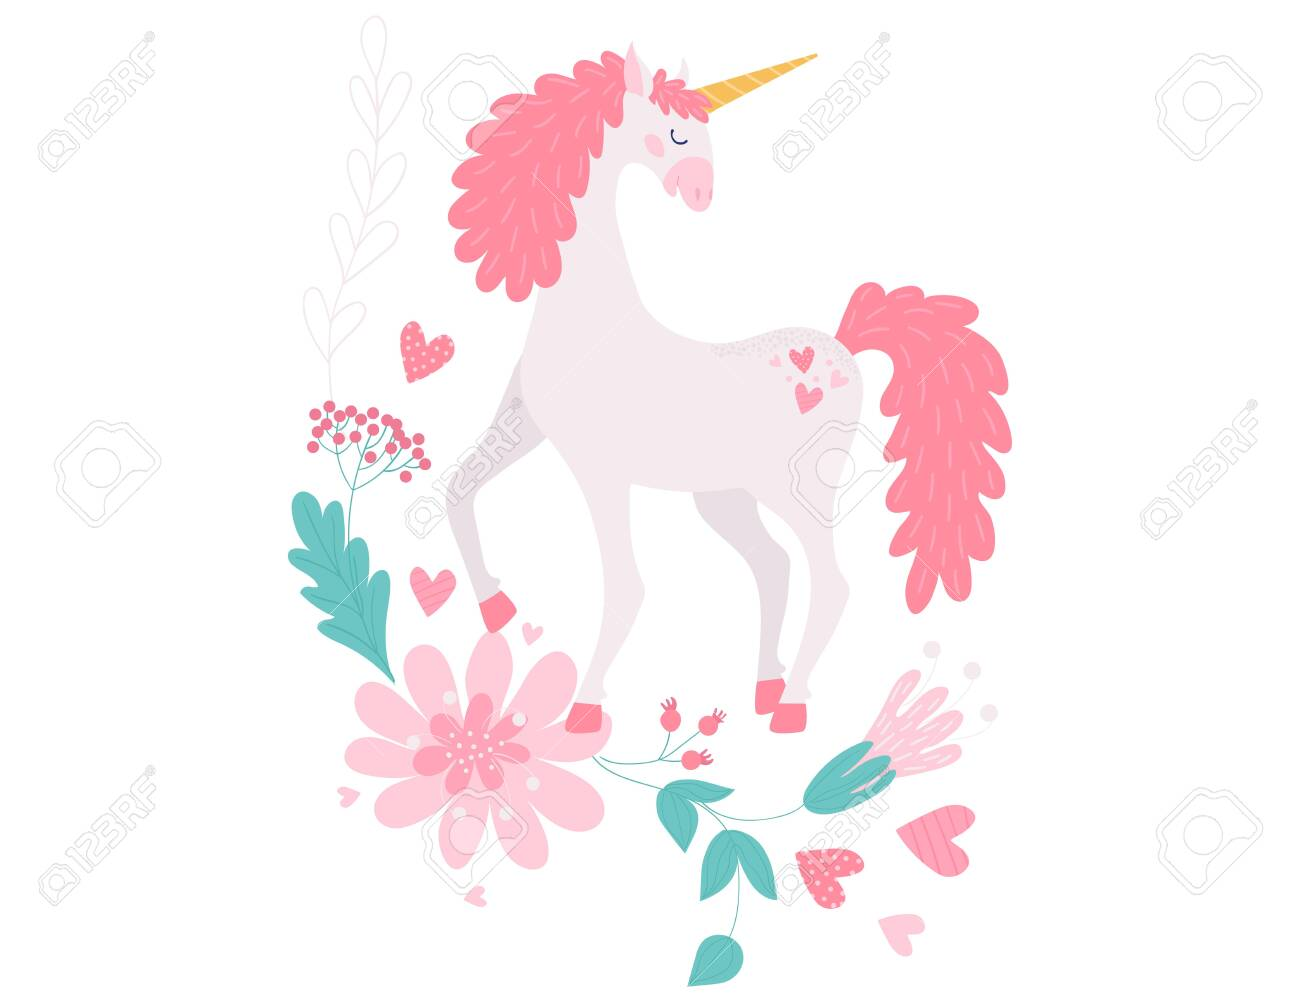 Unicorn Magical Horse Fantasy Animal Vector Illustration Royalty Free Cliparts Vectors And Stock Illustration Image 145720828